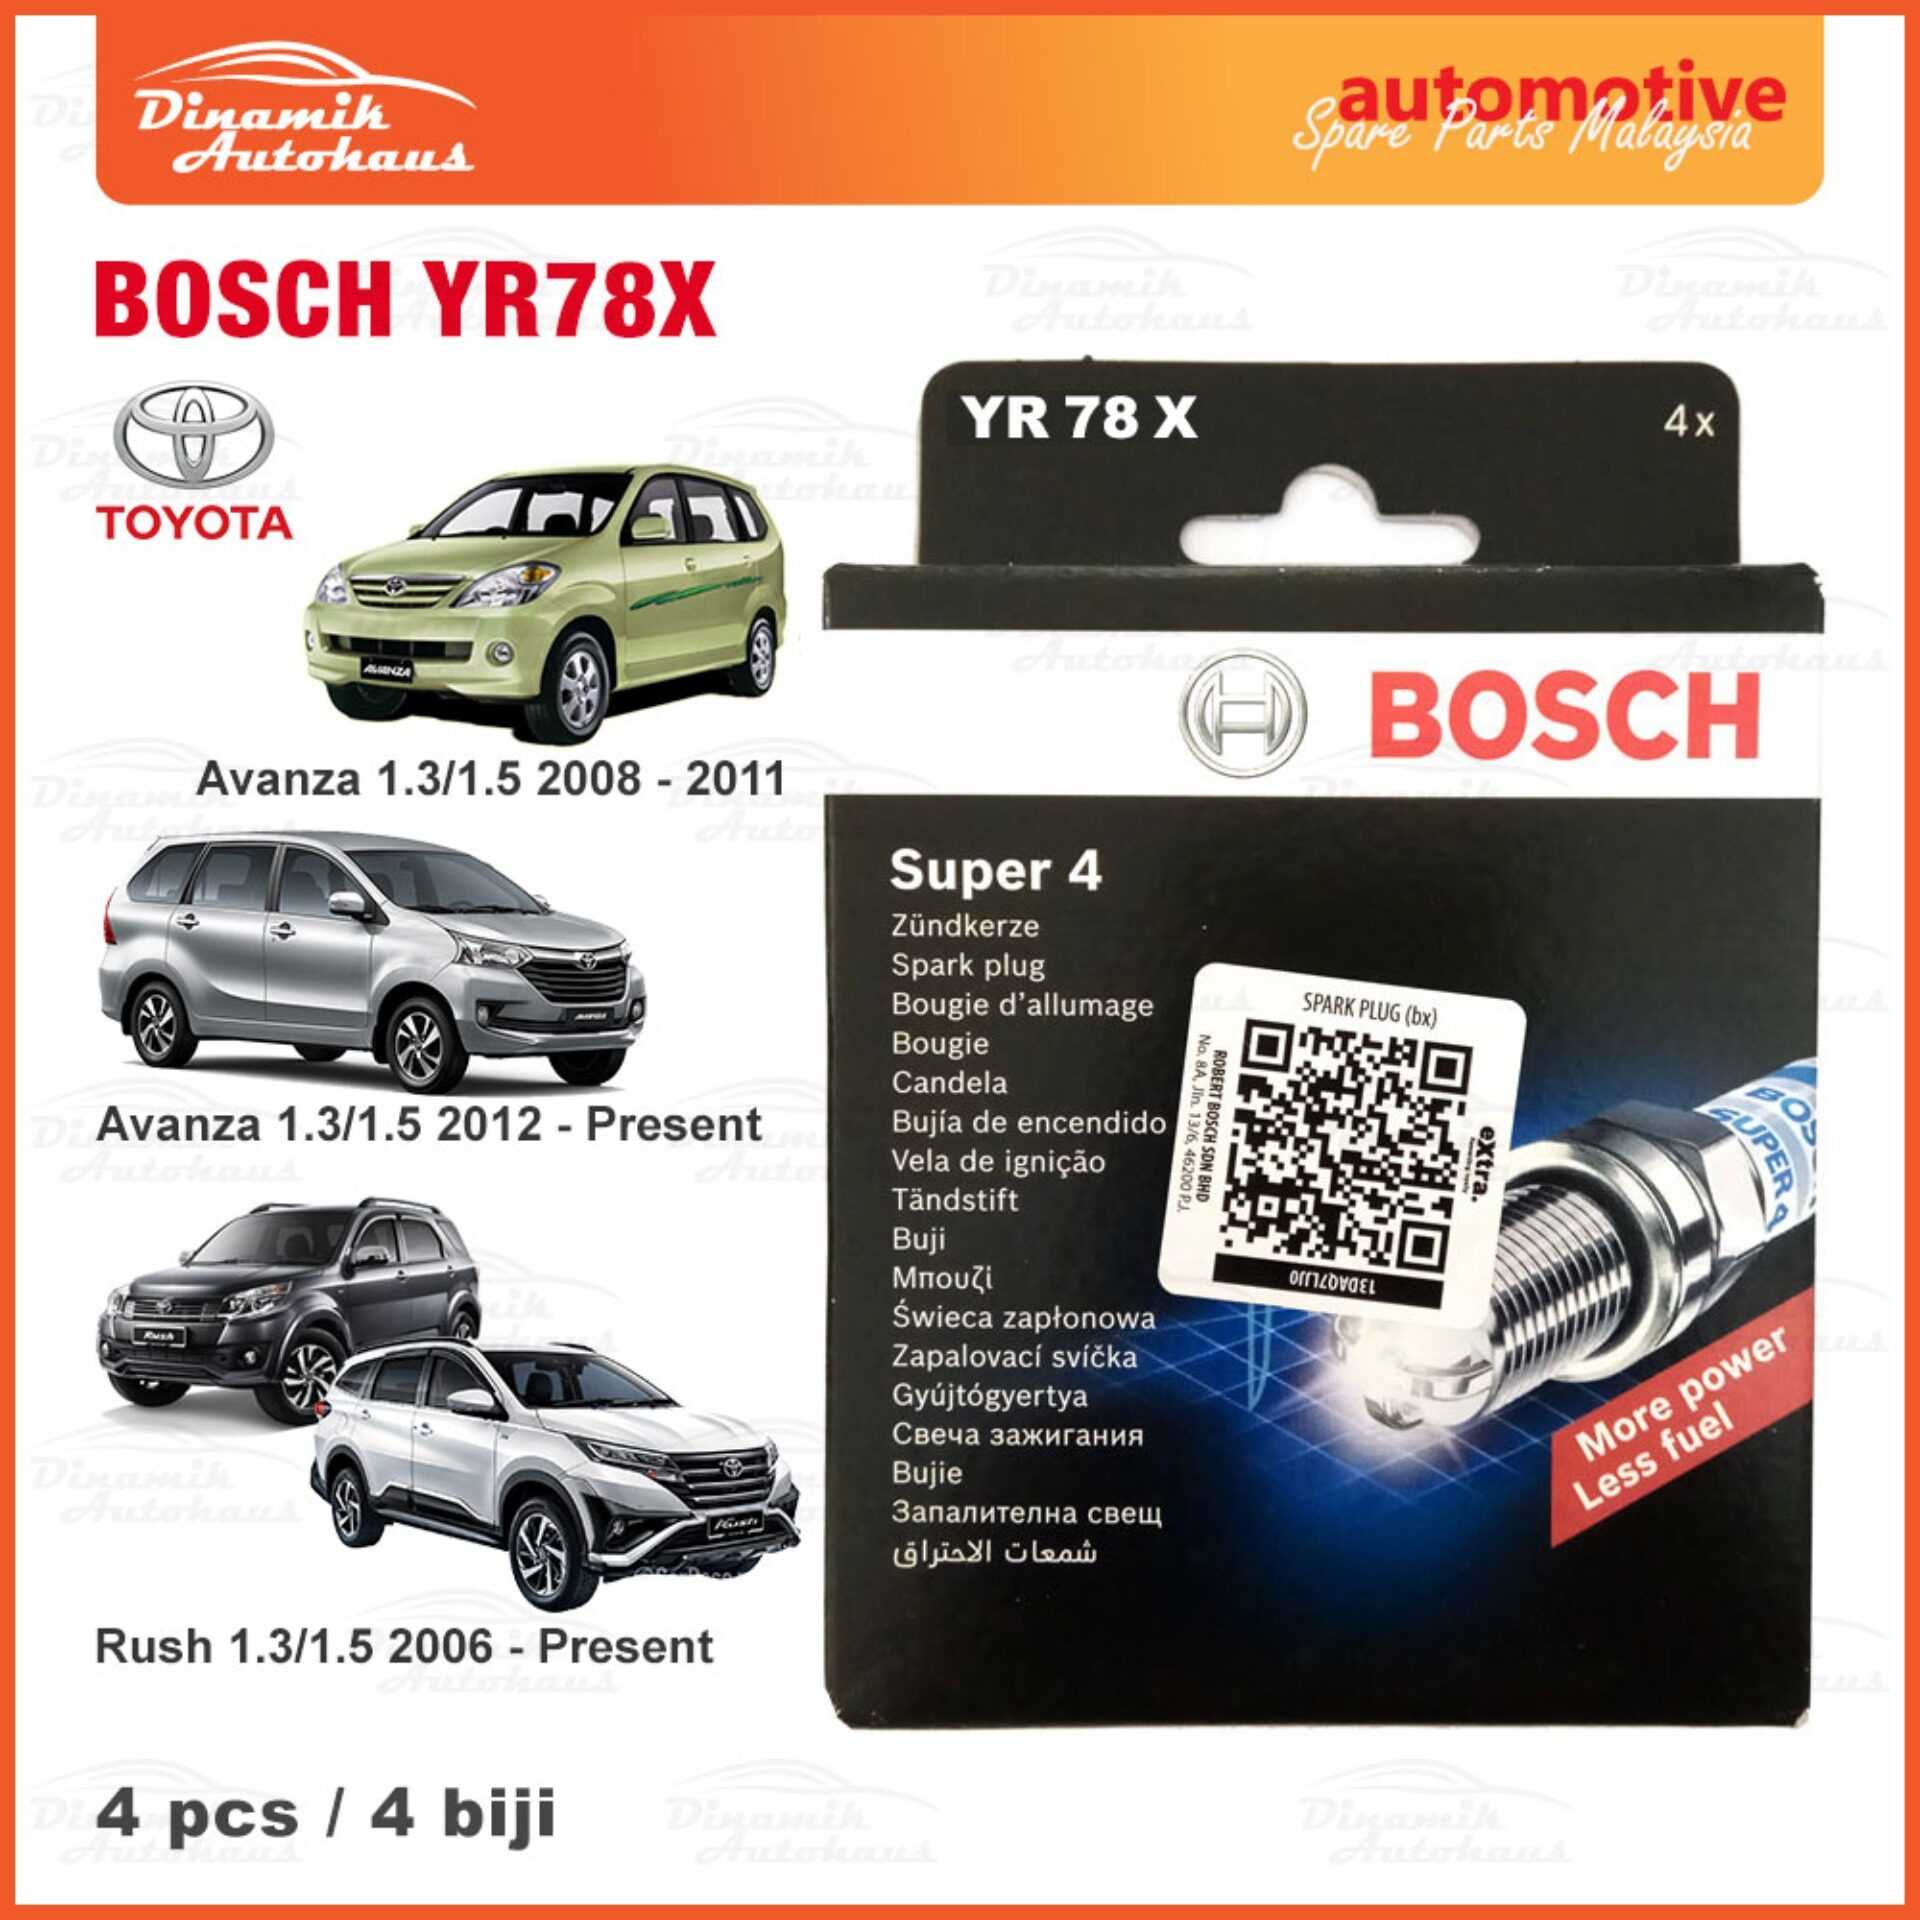 Toyota Avanza Year 2007+ / Rush Year 2007+ Model Car Spark Plug Bosch YR78X Super 4 (4pcs)